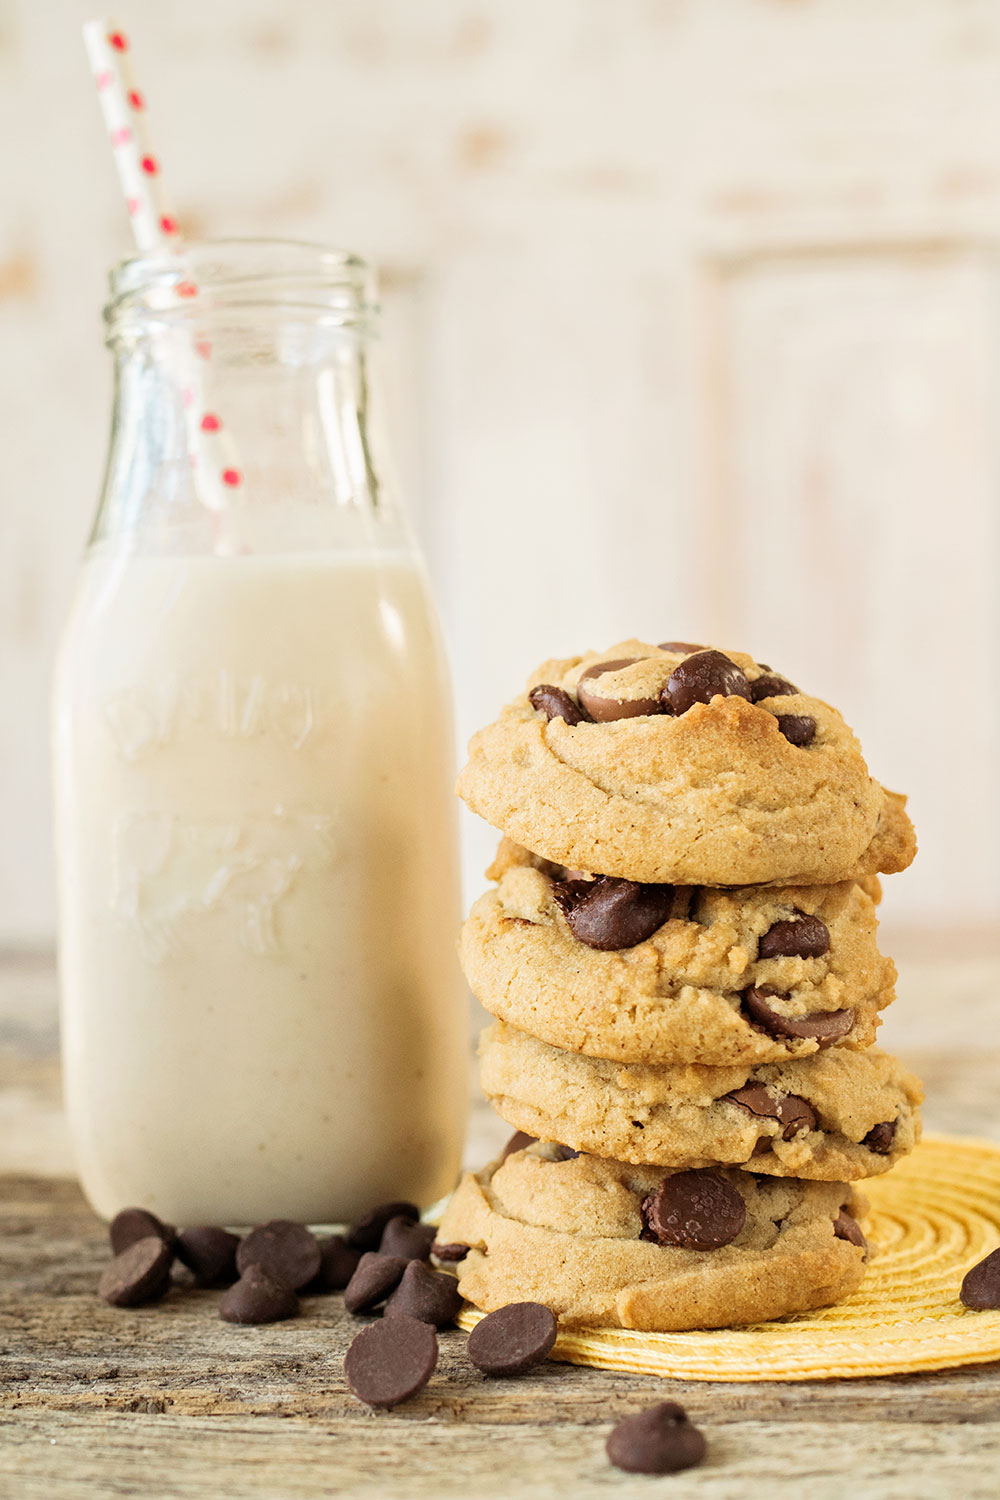 stack of 4 vegan chocolate chip cookies with a small milk bottle of cashew milk